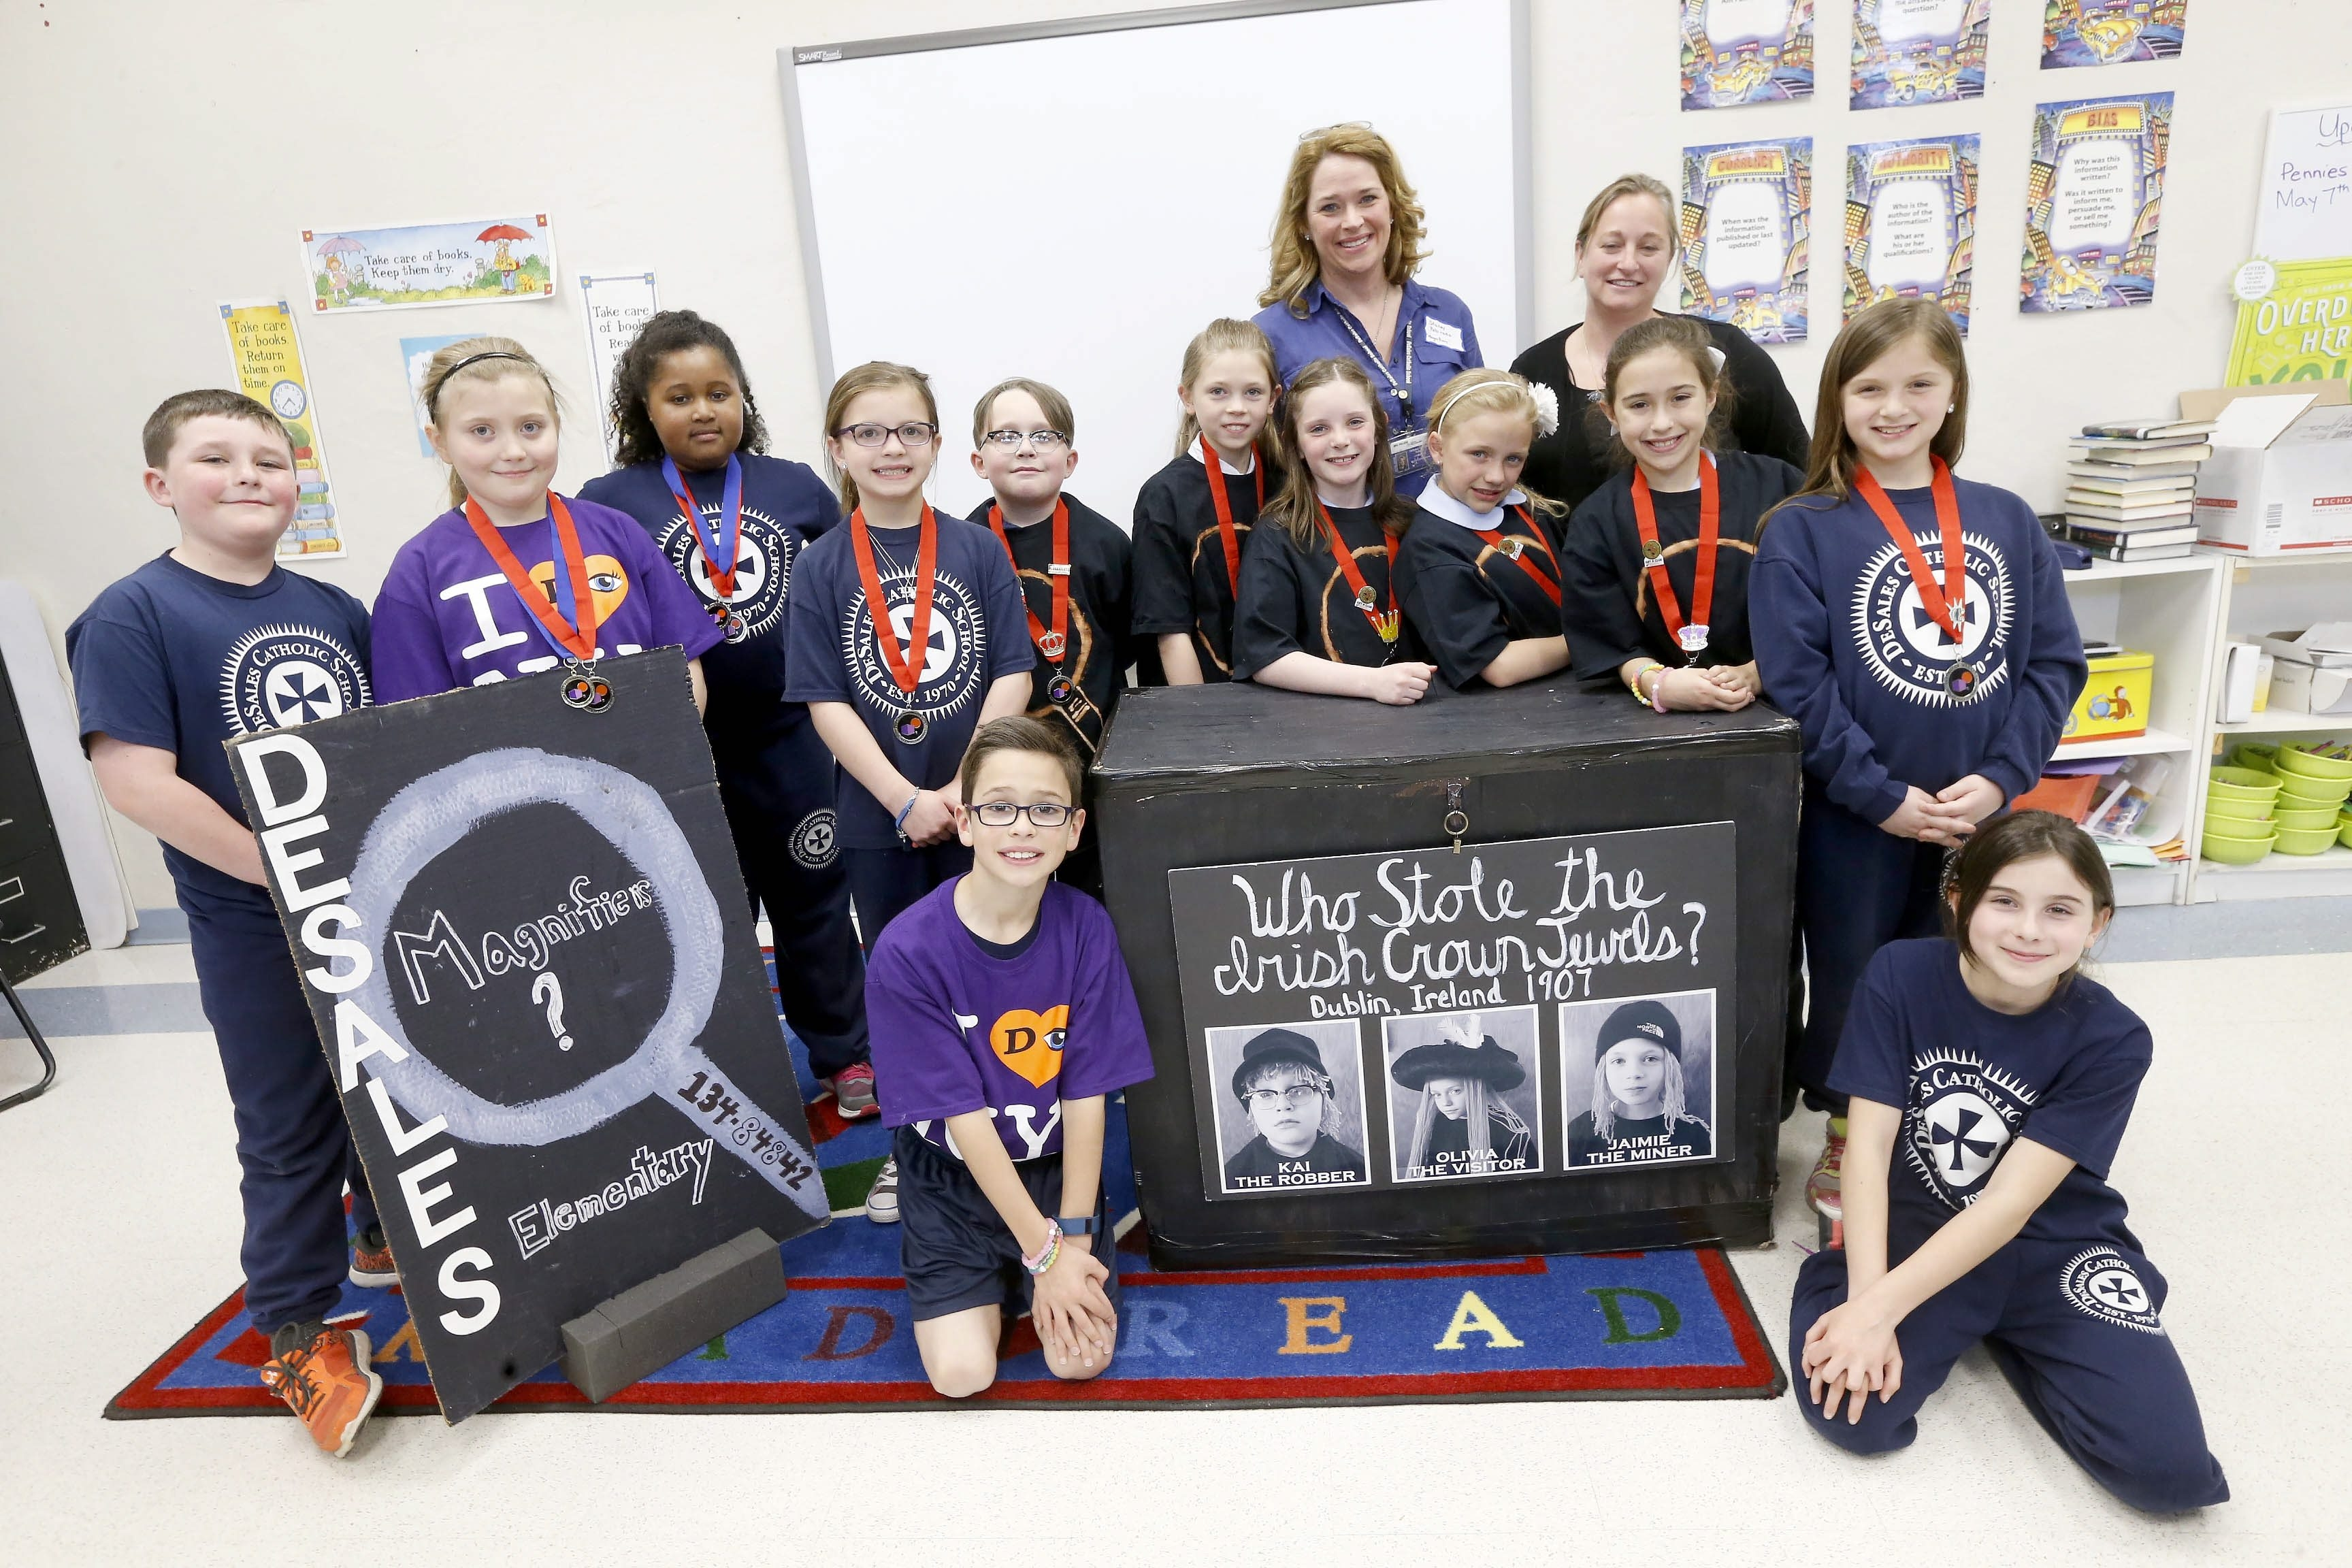 """DeSales Catholic School students and teachers heading to """"Destination Imagination in Knoxville, Tenn., later this month include:"""" kneeling, from left, Dominic Pellicano and Isabella Watson; standing, from left, Daniel Rahill, Aubree Parker, Hannah Upshaw, Jillian Knuutila, Kai Schiesel, Jaimie Fraass, Sydney Mosher, Olivia Rongo, Natalie Pellicano and Sophia Goyette; teachers in back row, from left, Stacey Pellicano and Nicole Goyette."""